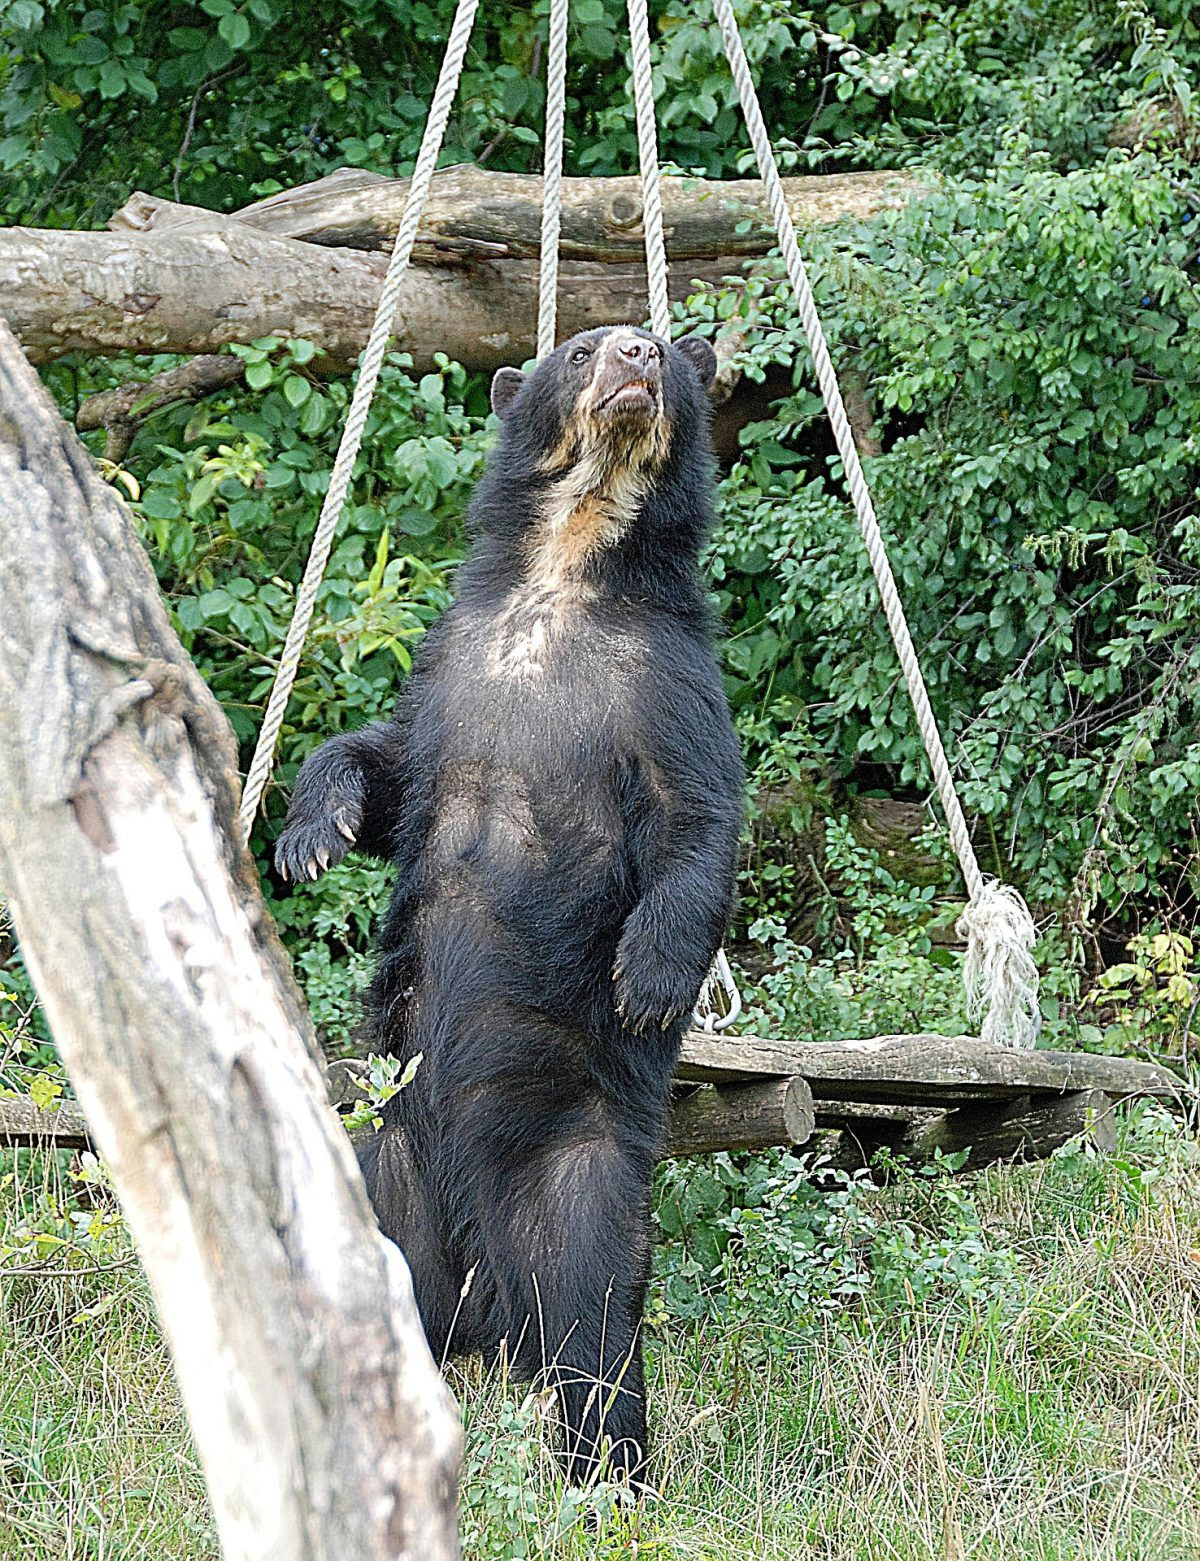 The spectacled bear is the last remaining species of bear native to South America and the last of his kind